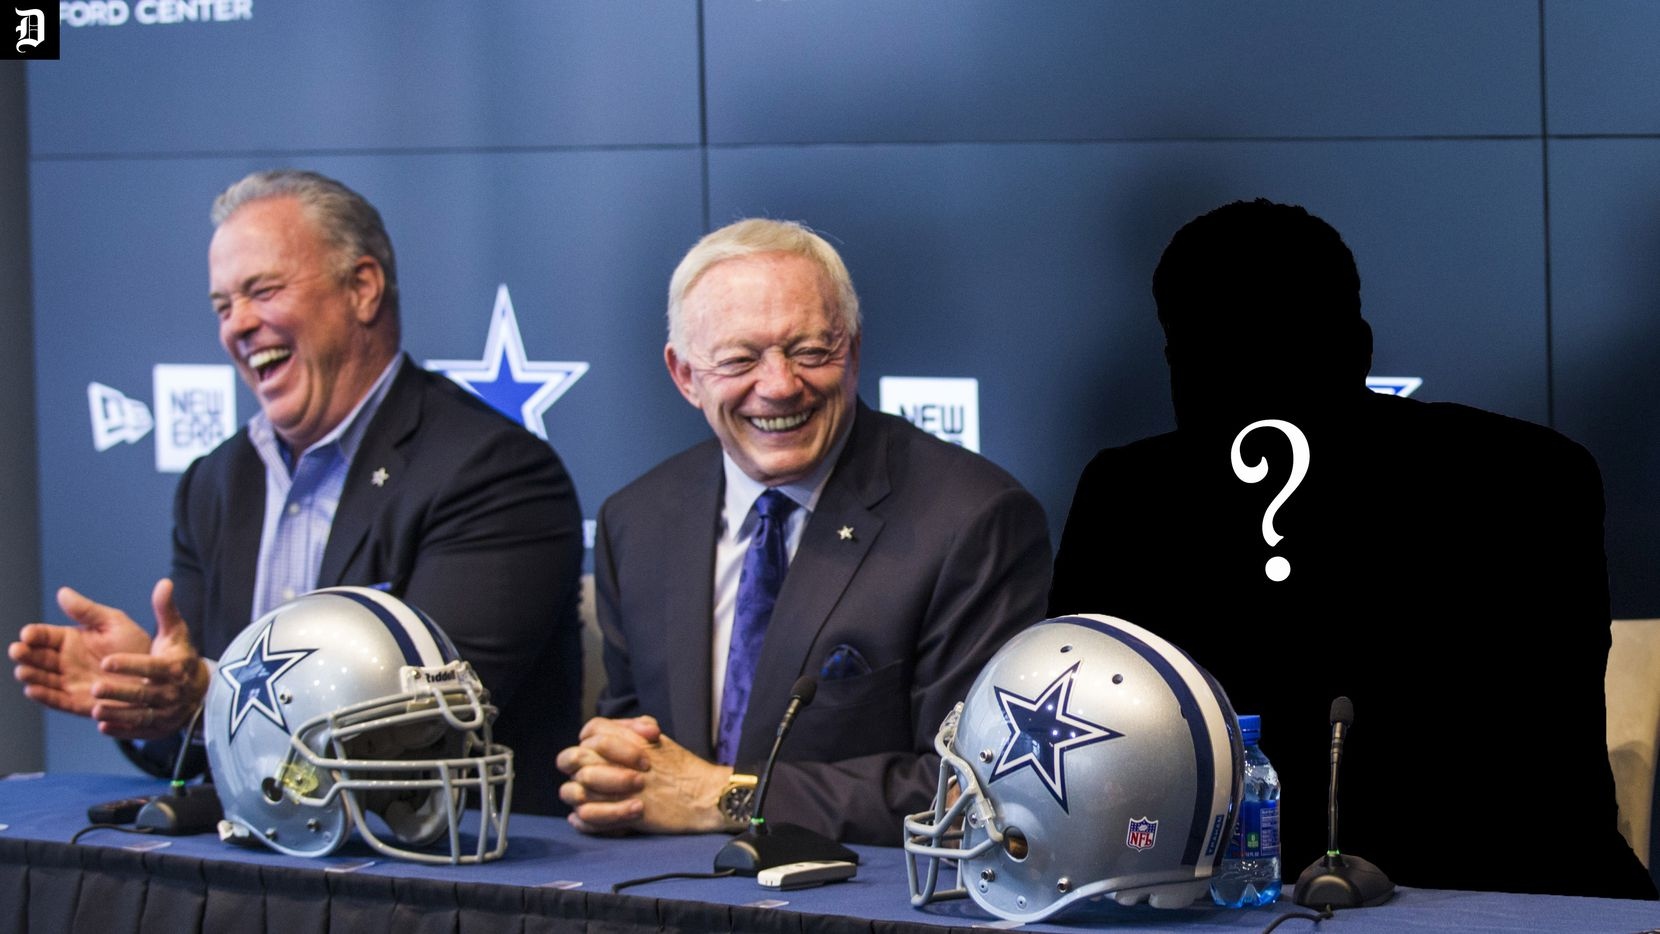 A Dallas Cowboys draft pick introduced in a press conference with Cowboys Executive Vice President and CEO Stephen Jones and owner Jerry Jones at The Star in Frisco, Texas.